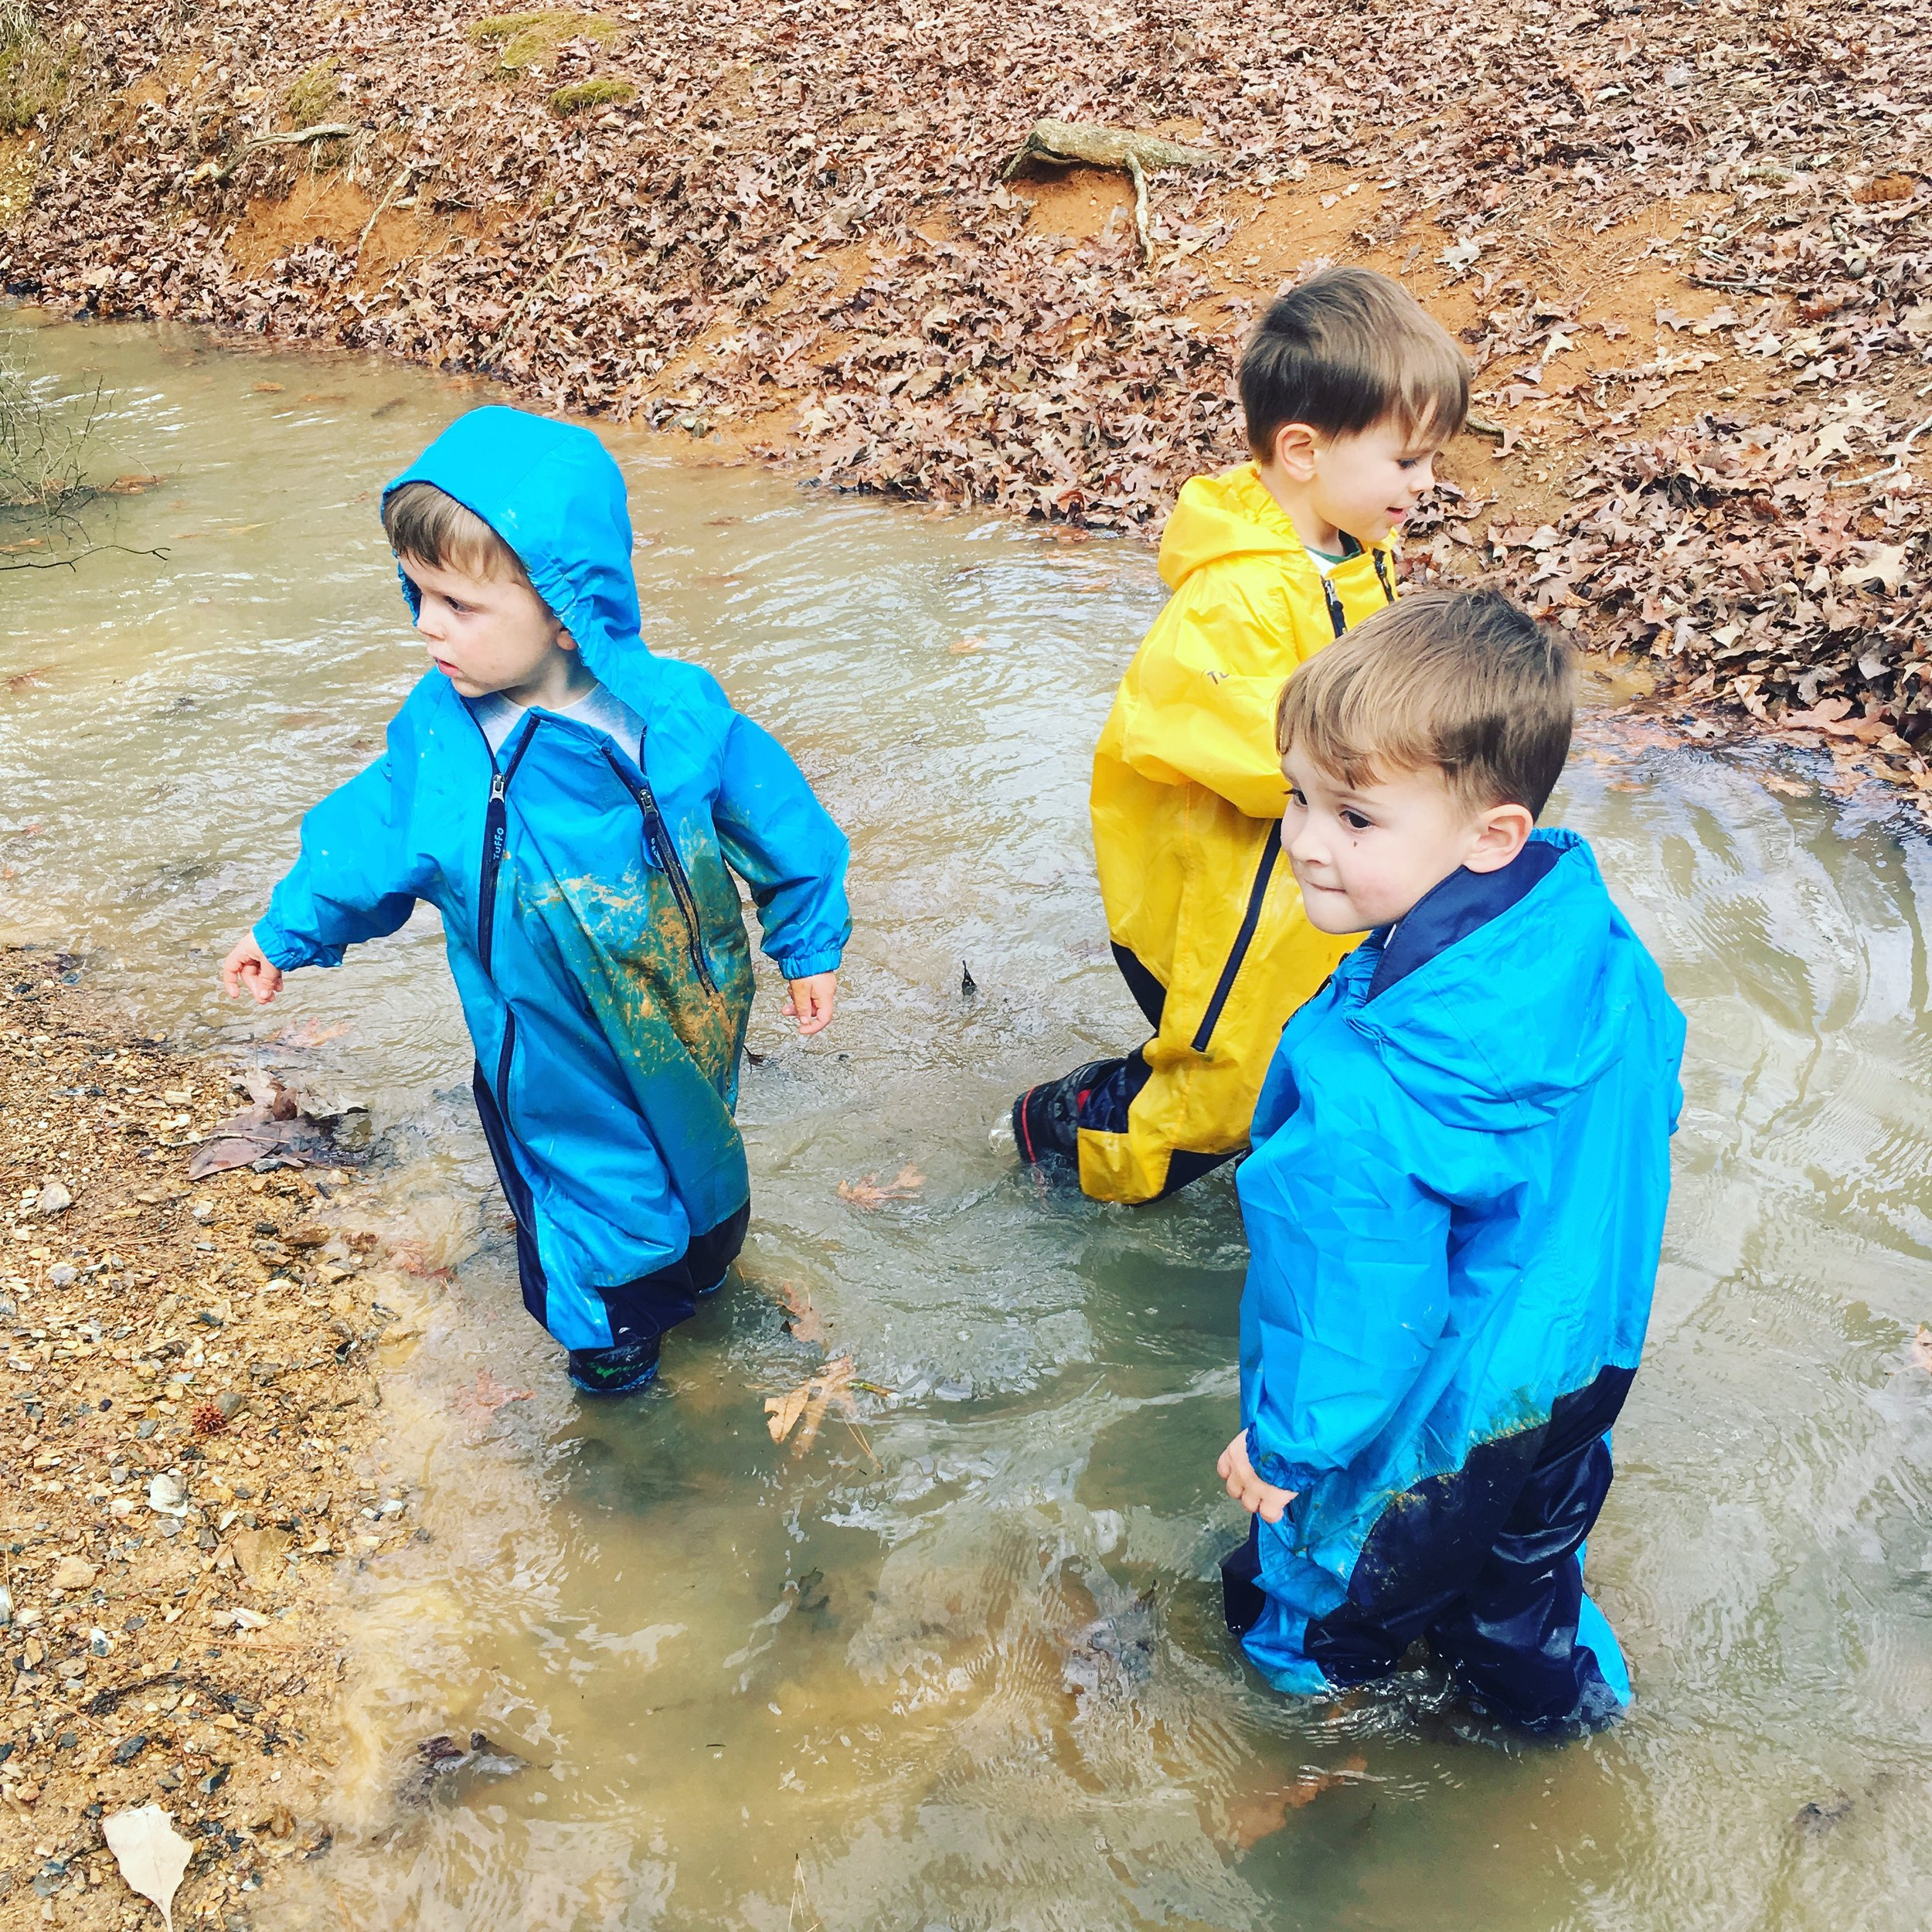 Children at the Lake Nixon Outdoor Preschool play in puddles and participate in the more usual preschool activity of finger-painting.